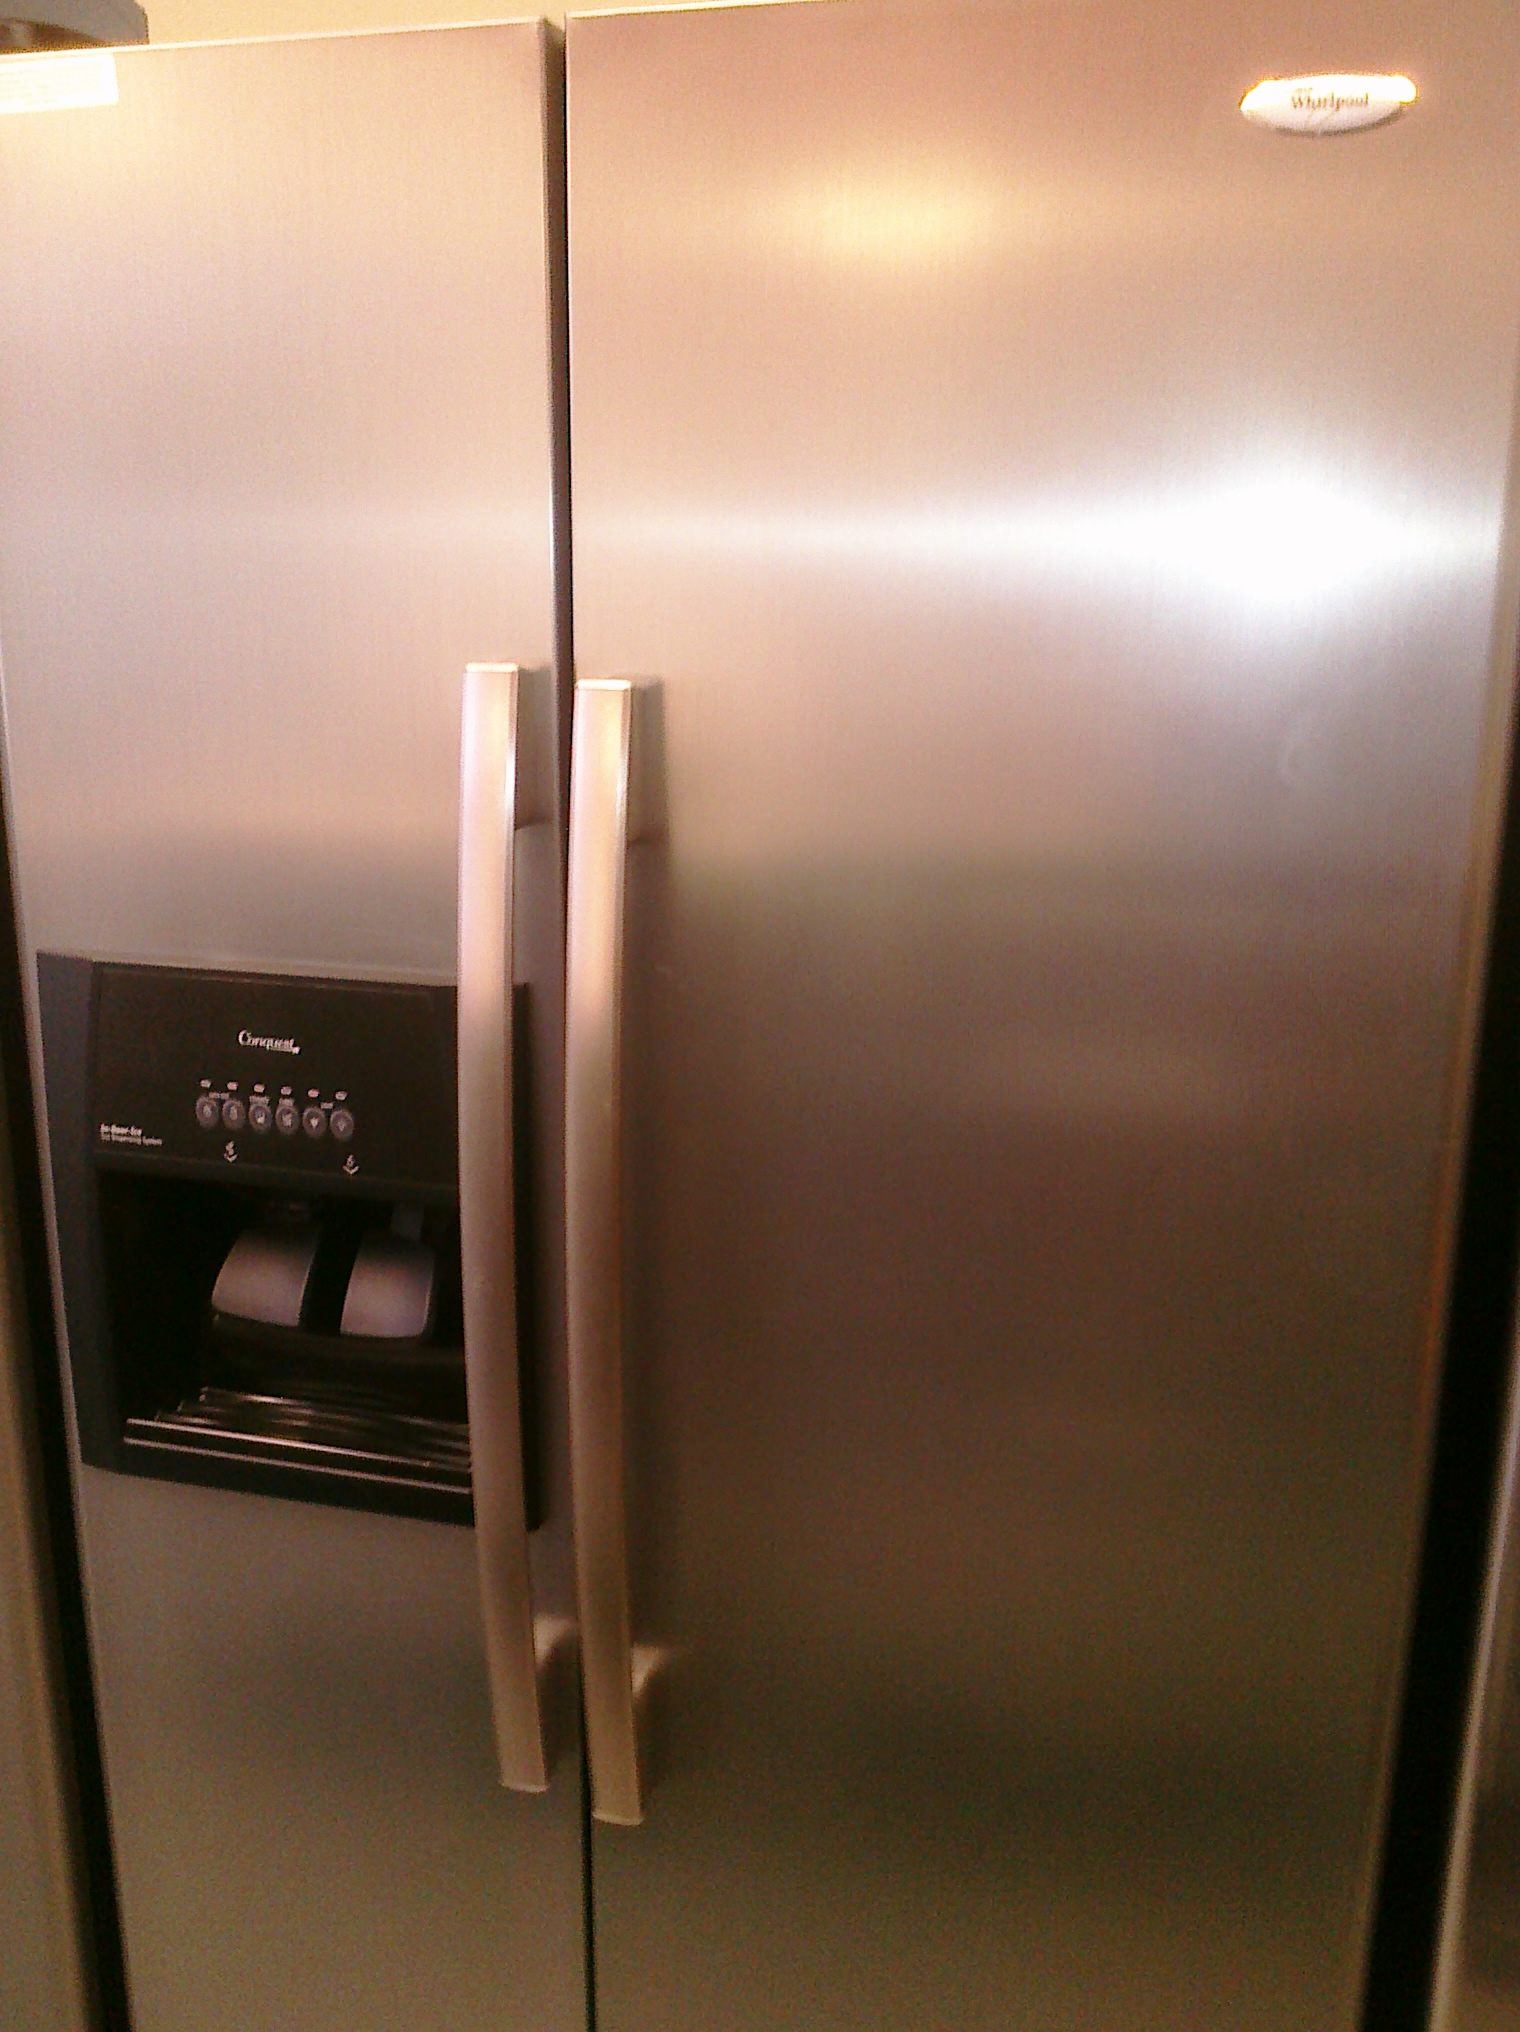 9 Whirlpool Ed5ltaxvl 25 Cubic Foot Flat Door Side By